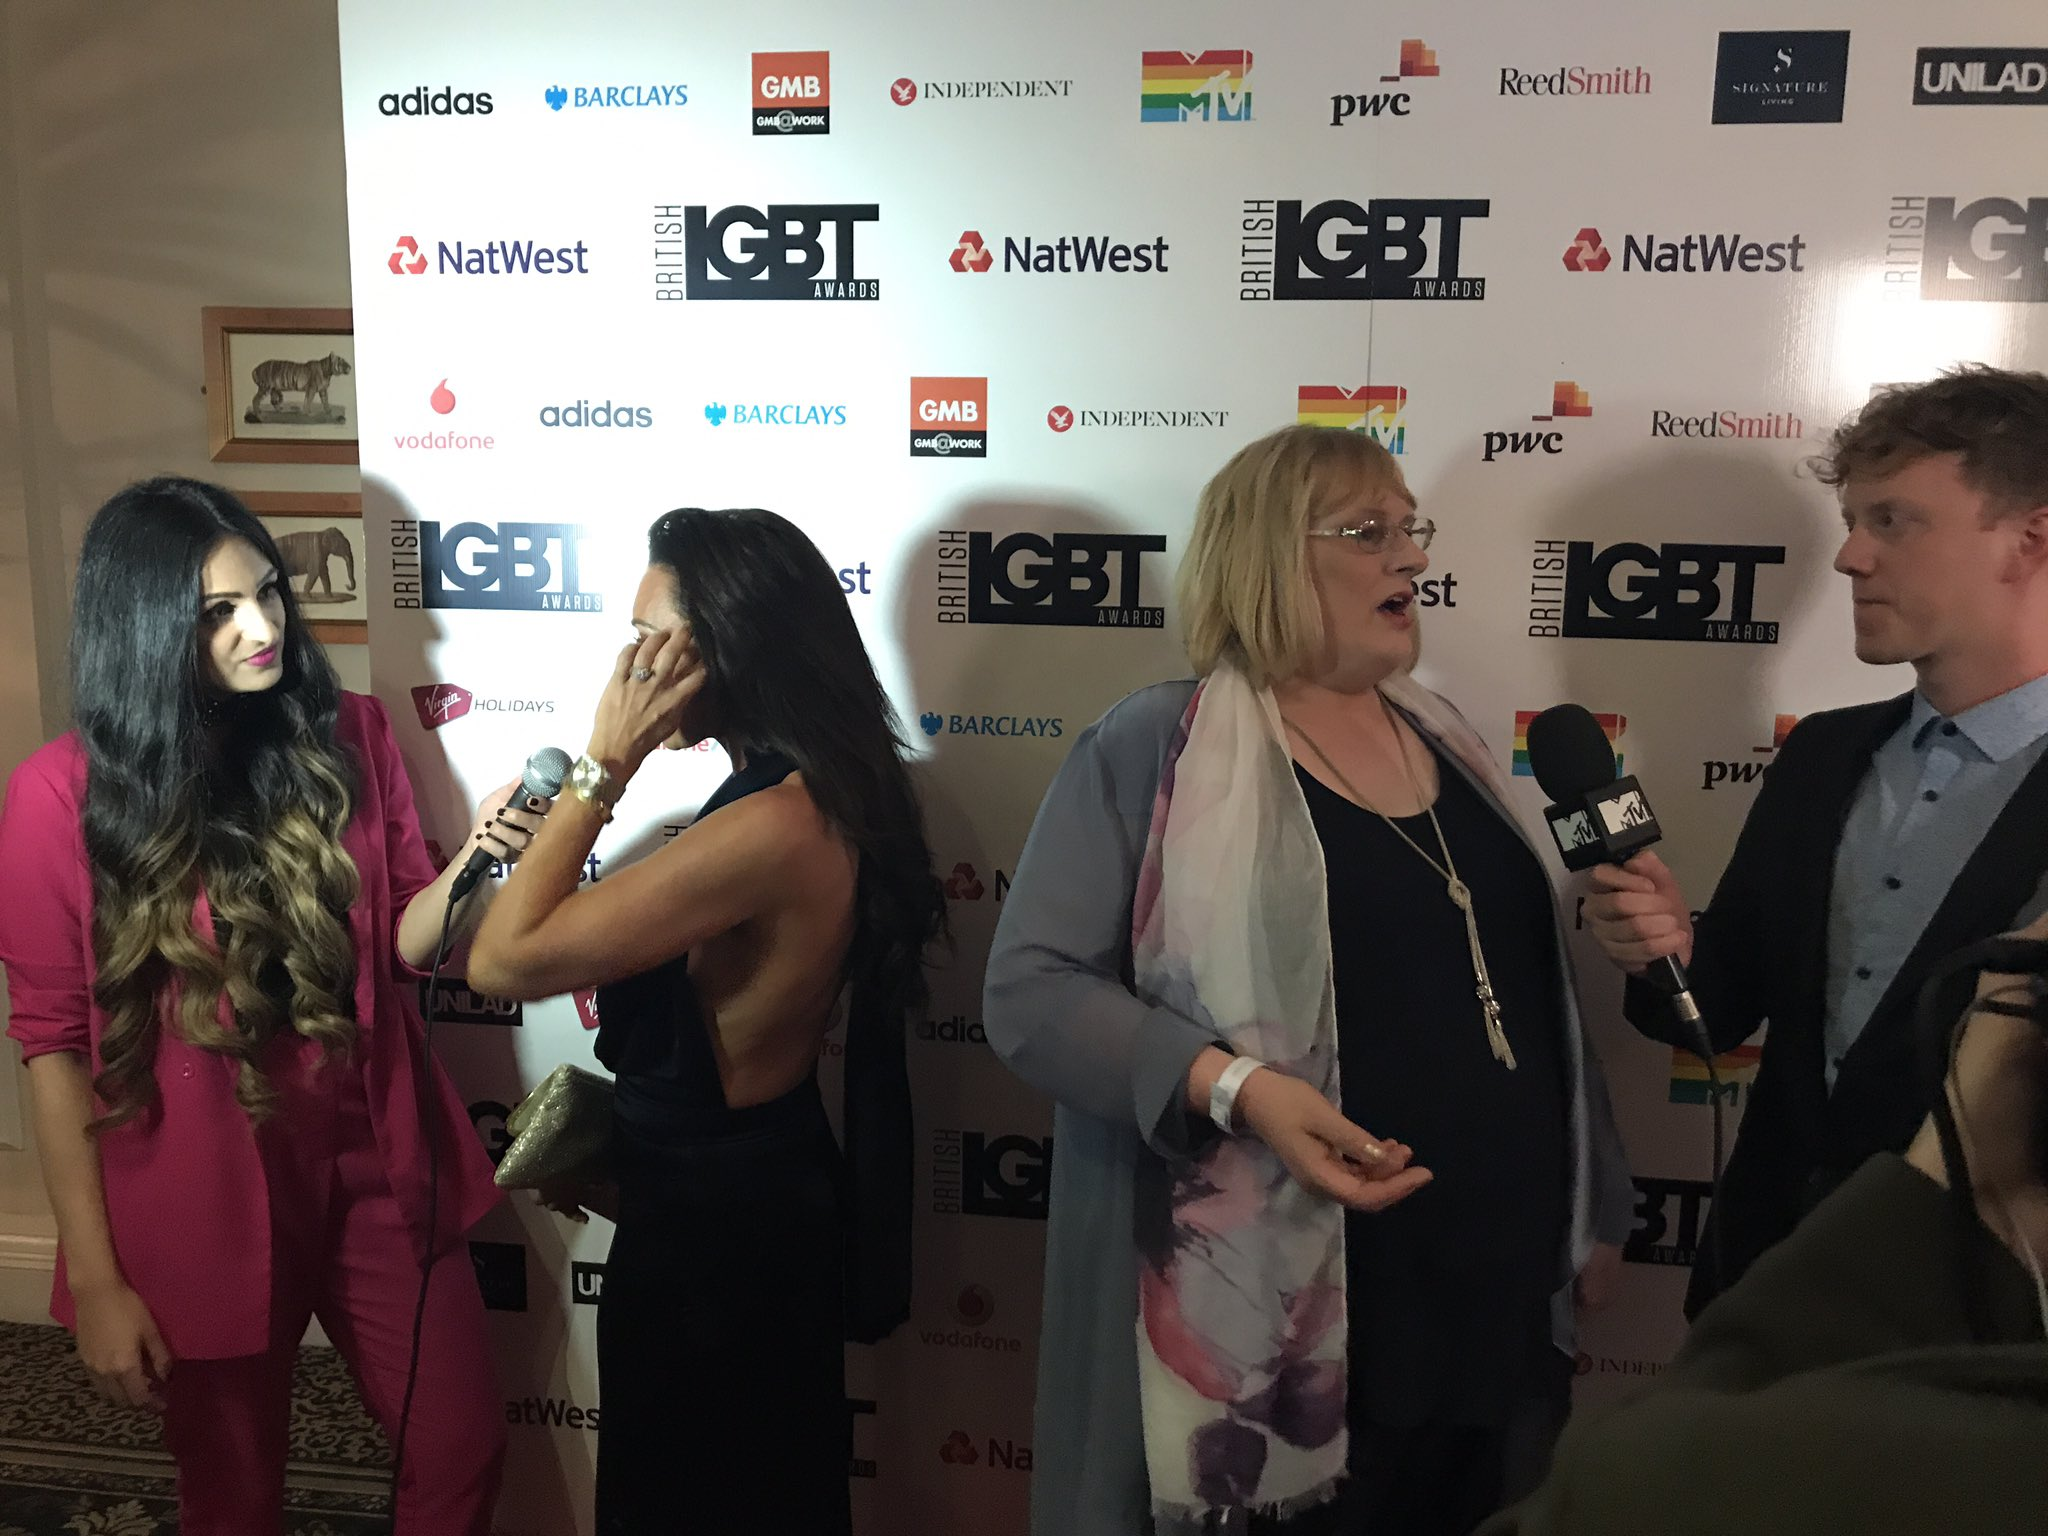 RT @DIVAmagazine: So excited to be on the red carpet for the @BritLGBTAwards! #proudsponsor https://t.co/pRYTqgsPPC